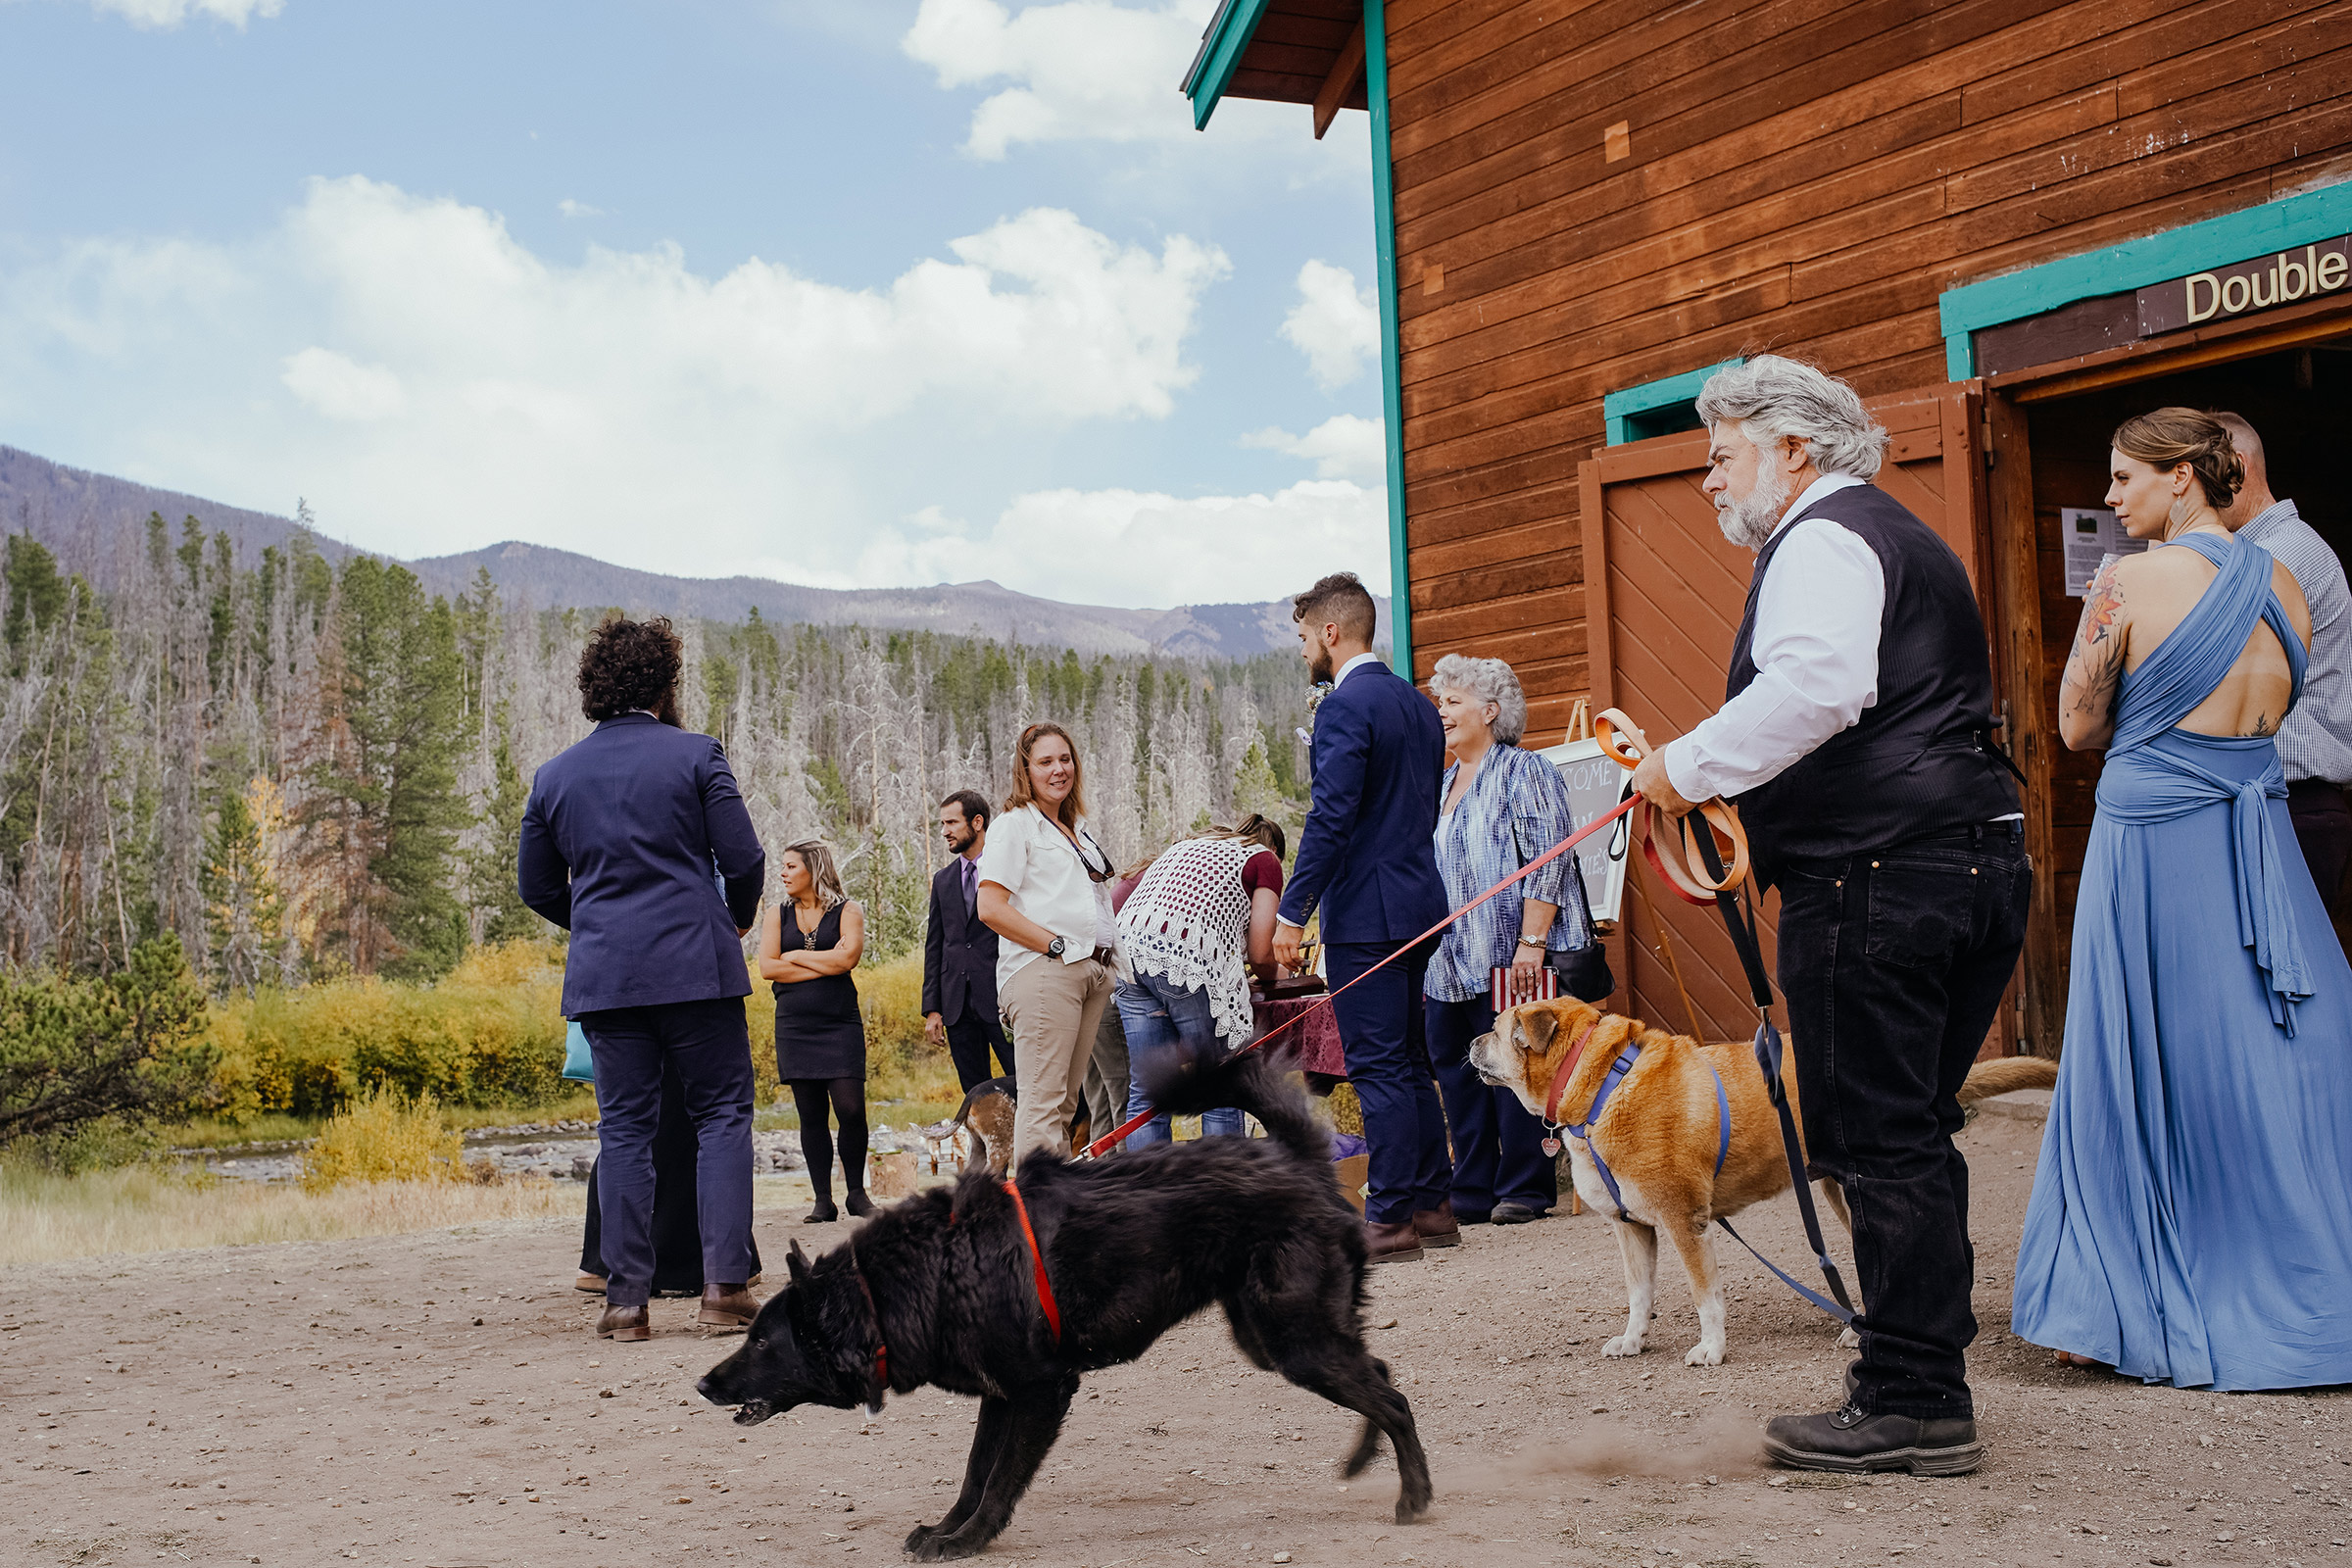 wedding-guest-with-dog-double-a-barn-grand-lake-colorado-raelyn-ramey-photography-354.jpg